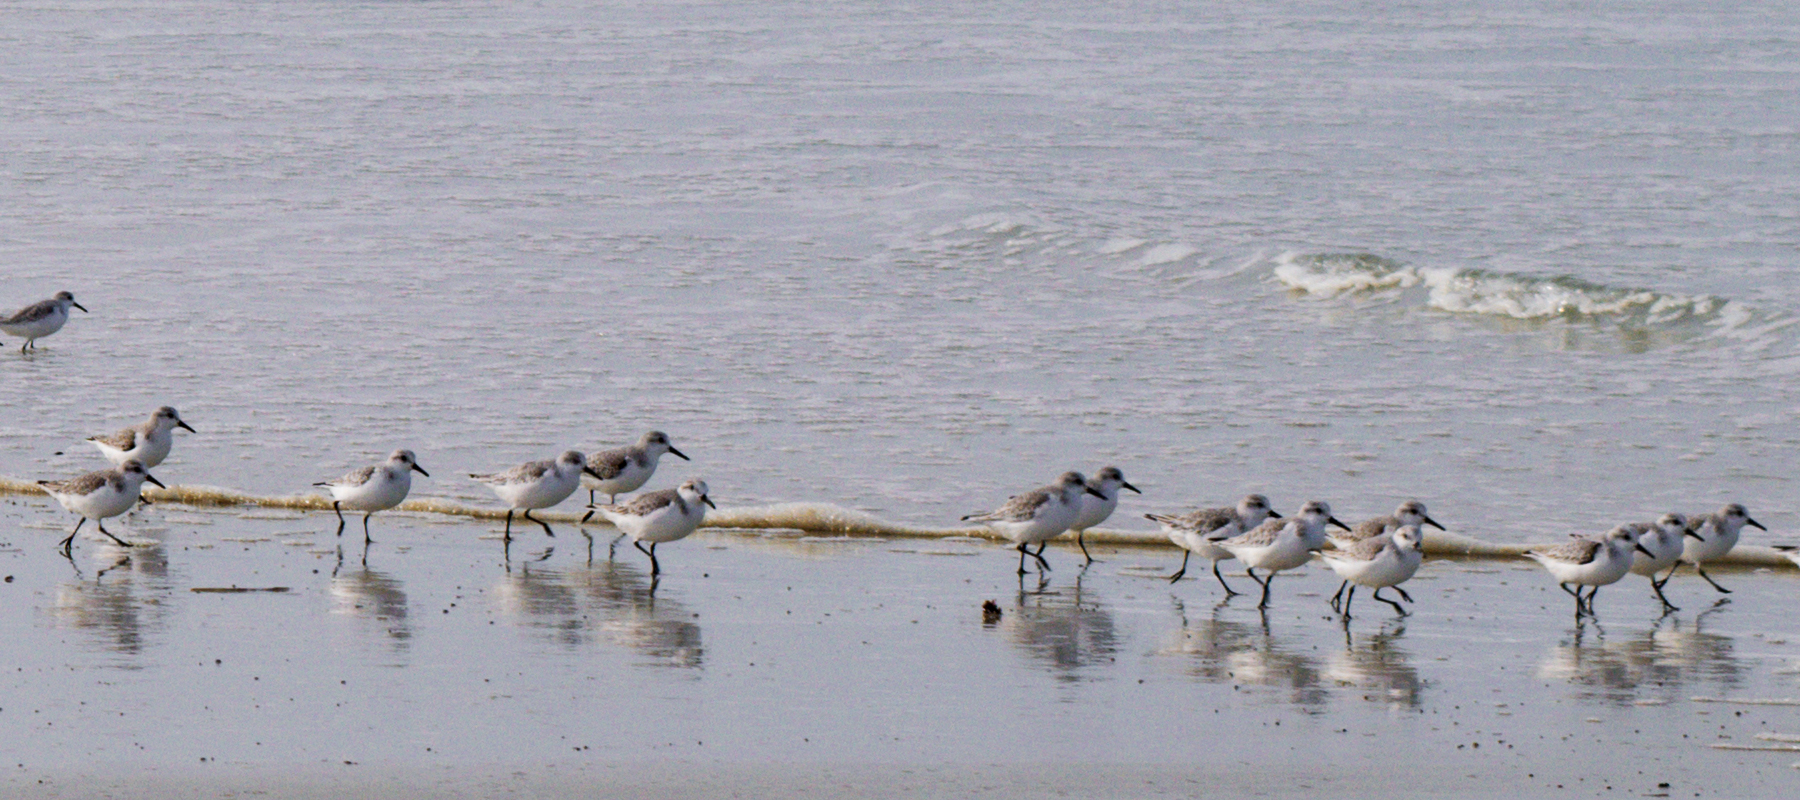 Sanderlings running along the ocean edge